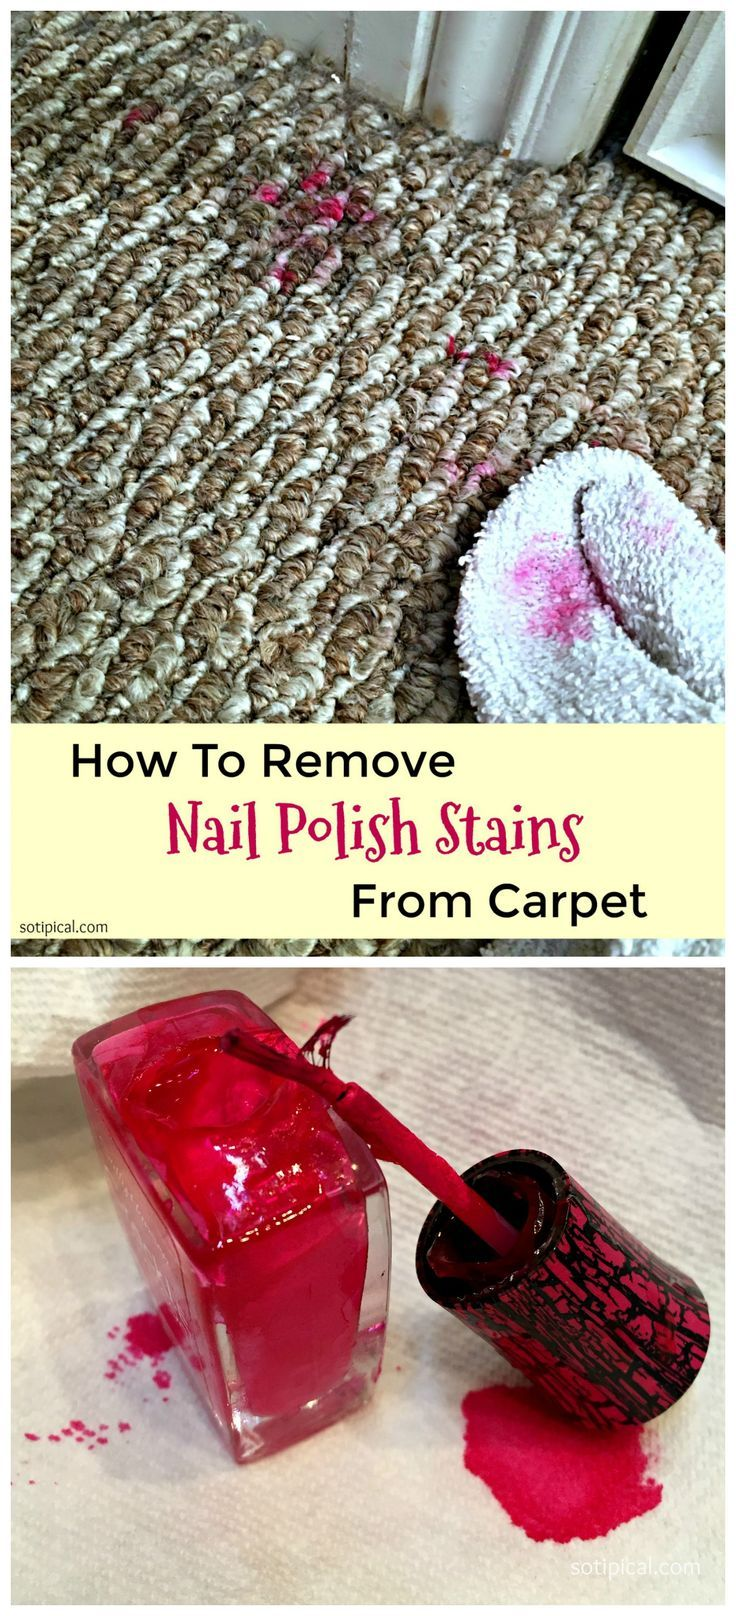 How to a remove nail polish stain from carpet so tipical